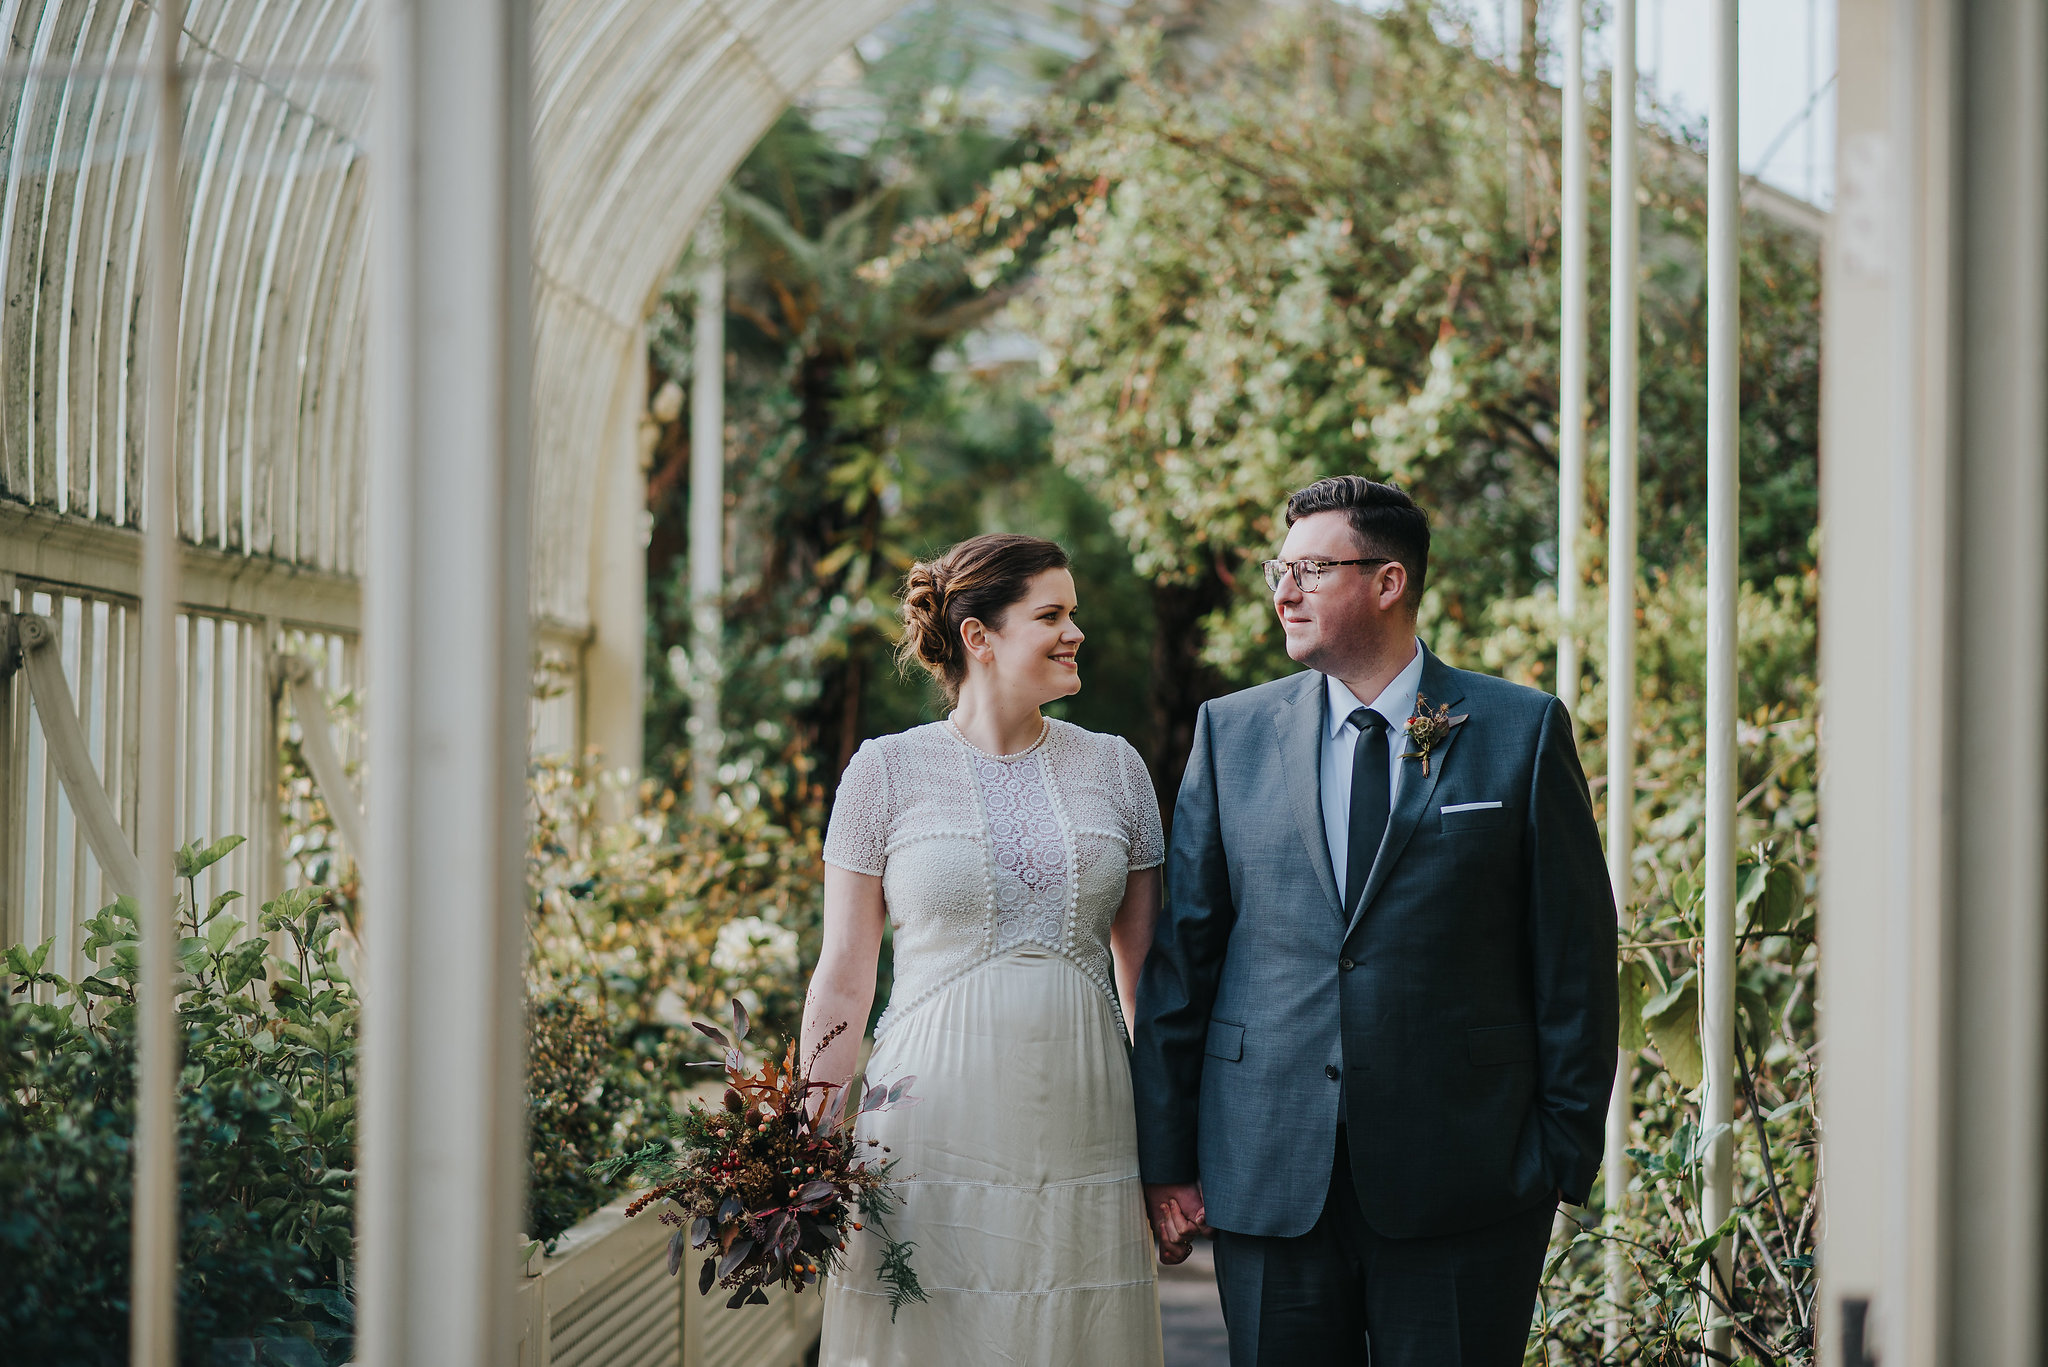 Bride and groom at the Botanic Gardens Dublin on their wedding day